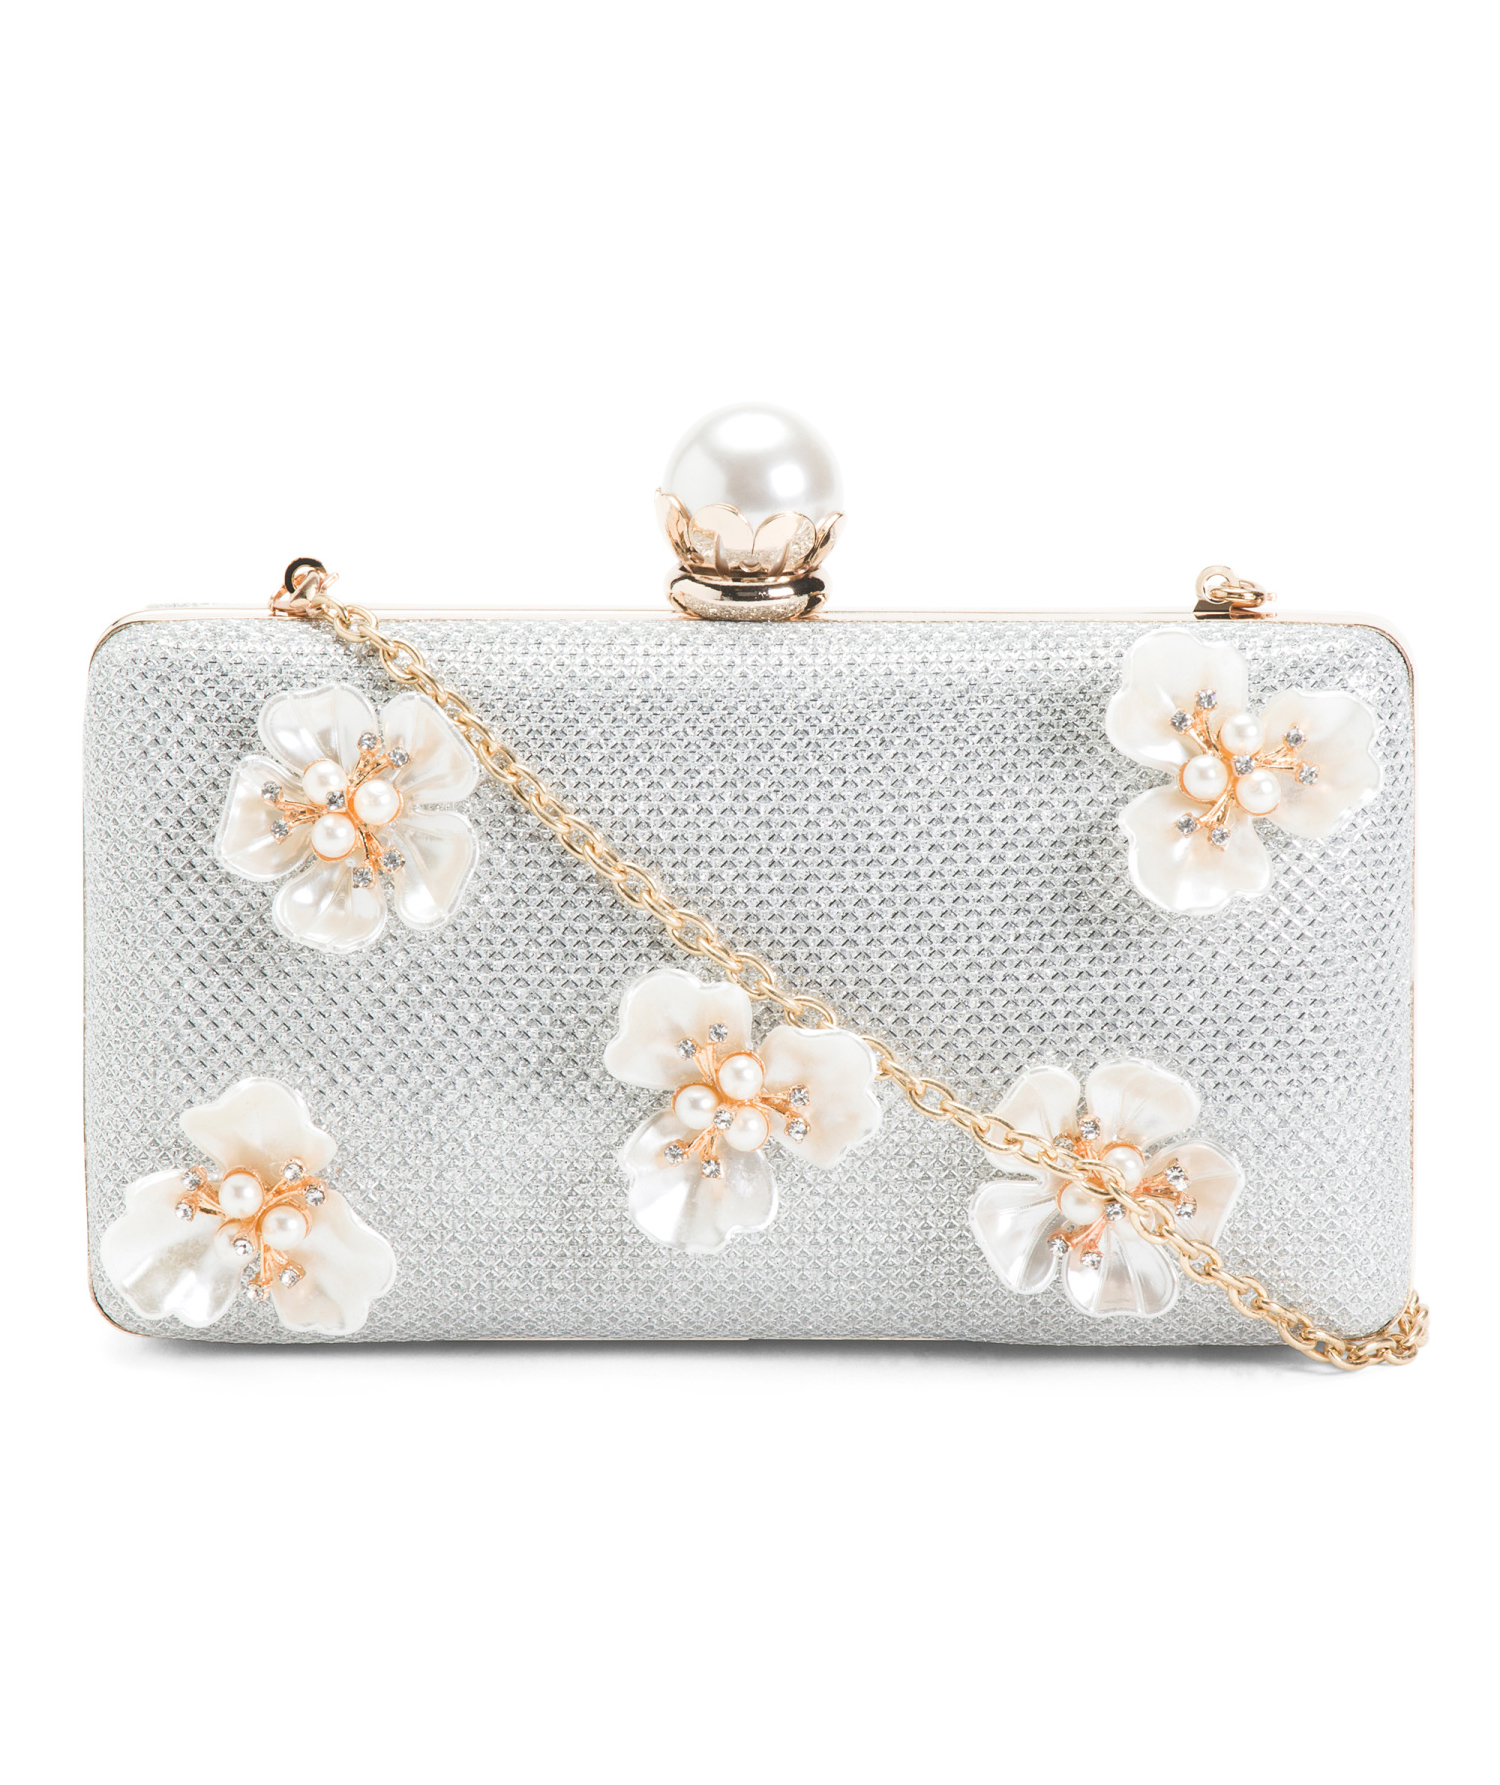 Joseph D'Arezzo Minaudiere Evening Bag